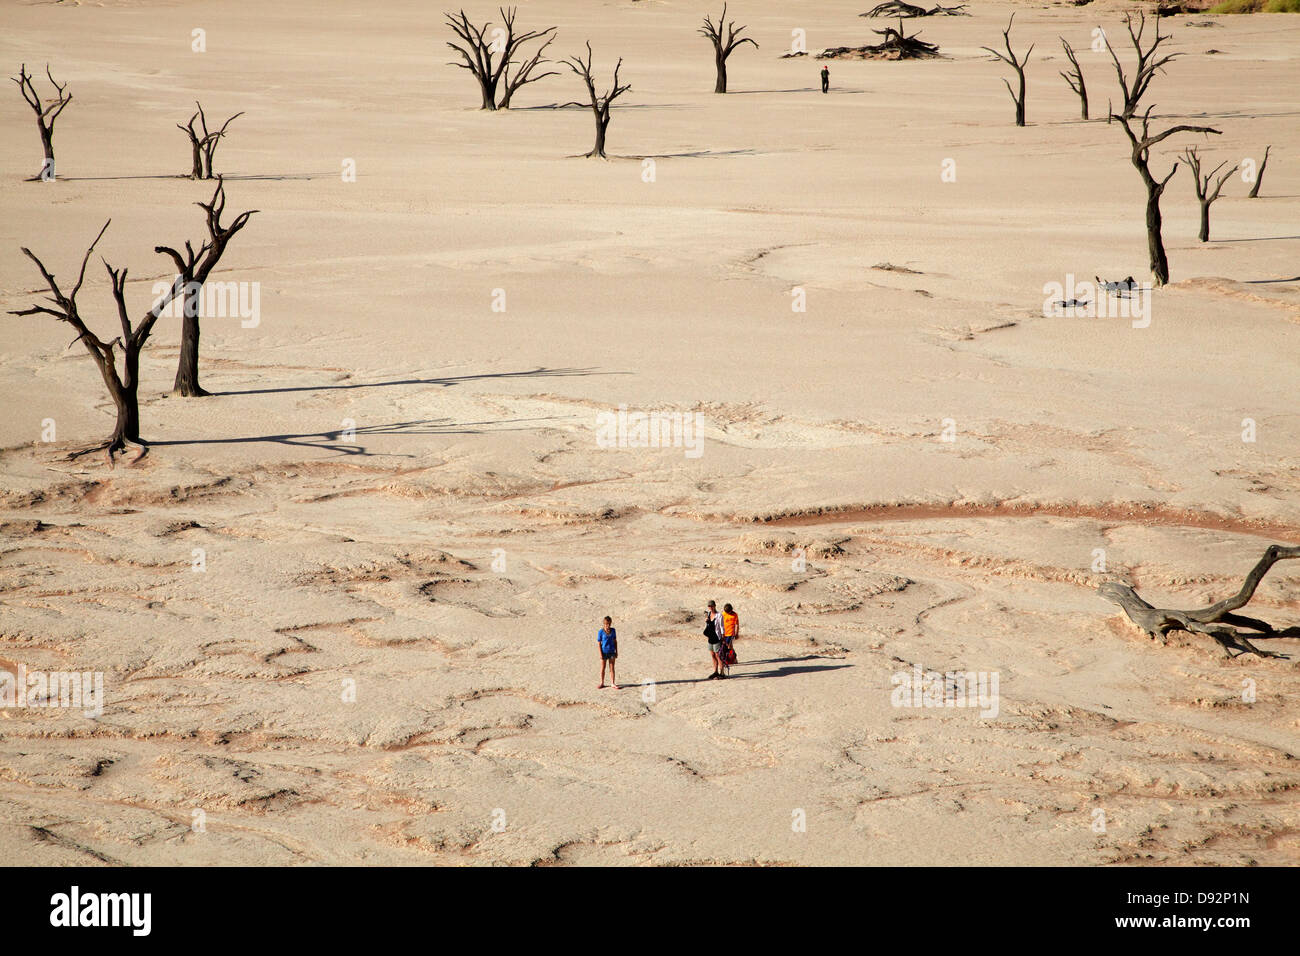 Dead trees (thought to be 900 years old), tourists, and sand dunes at Deadvlei, Namib-Naukluft National Park, Nambia, - Stock Image